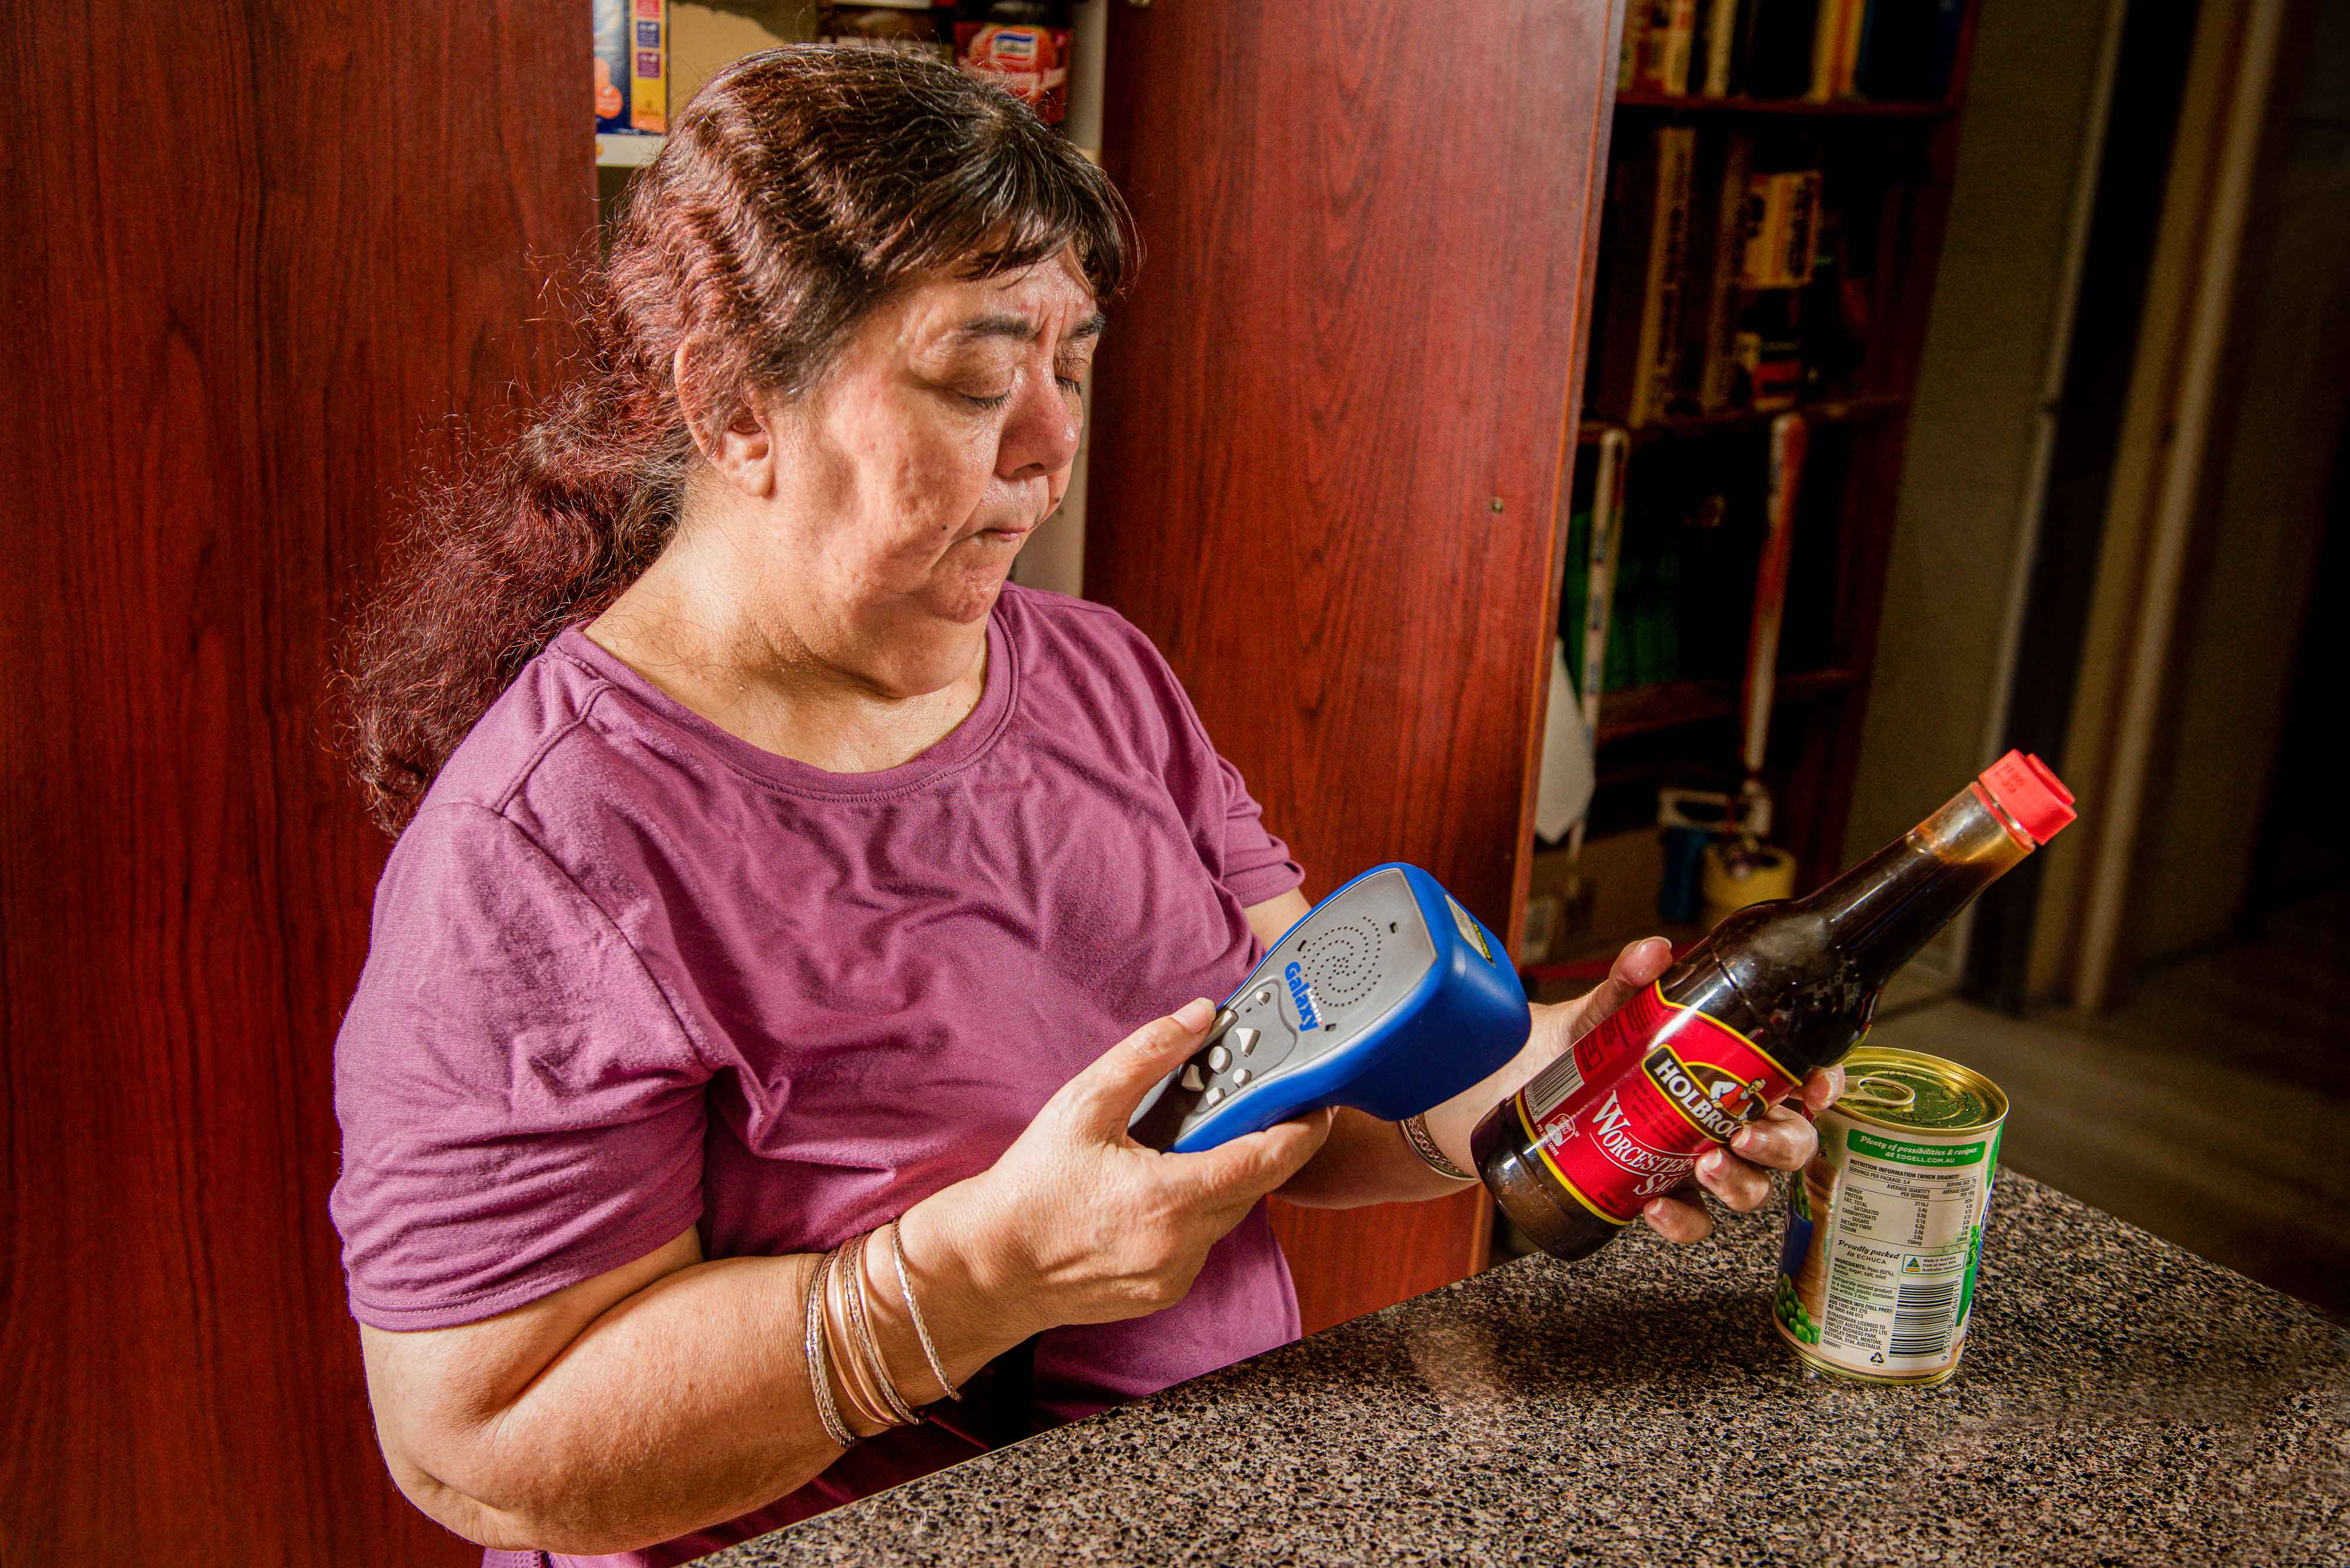 Maria O'Hara scanning food using her digital barcode scanner